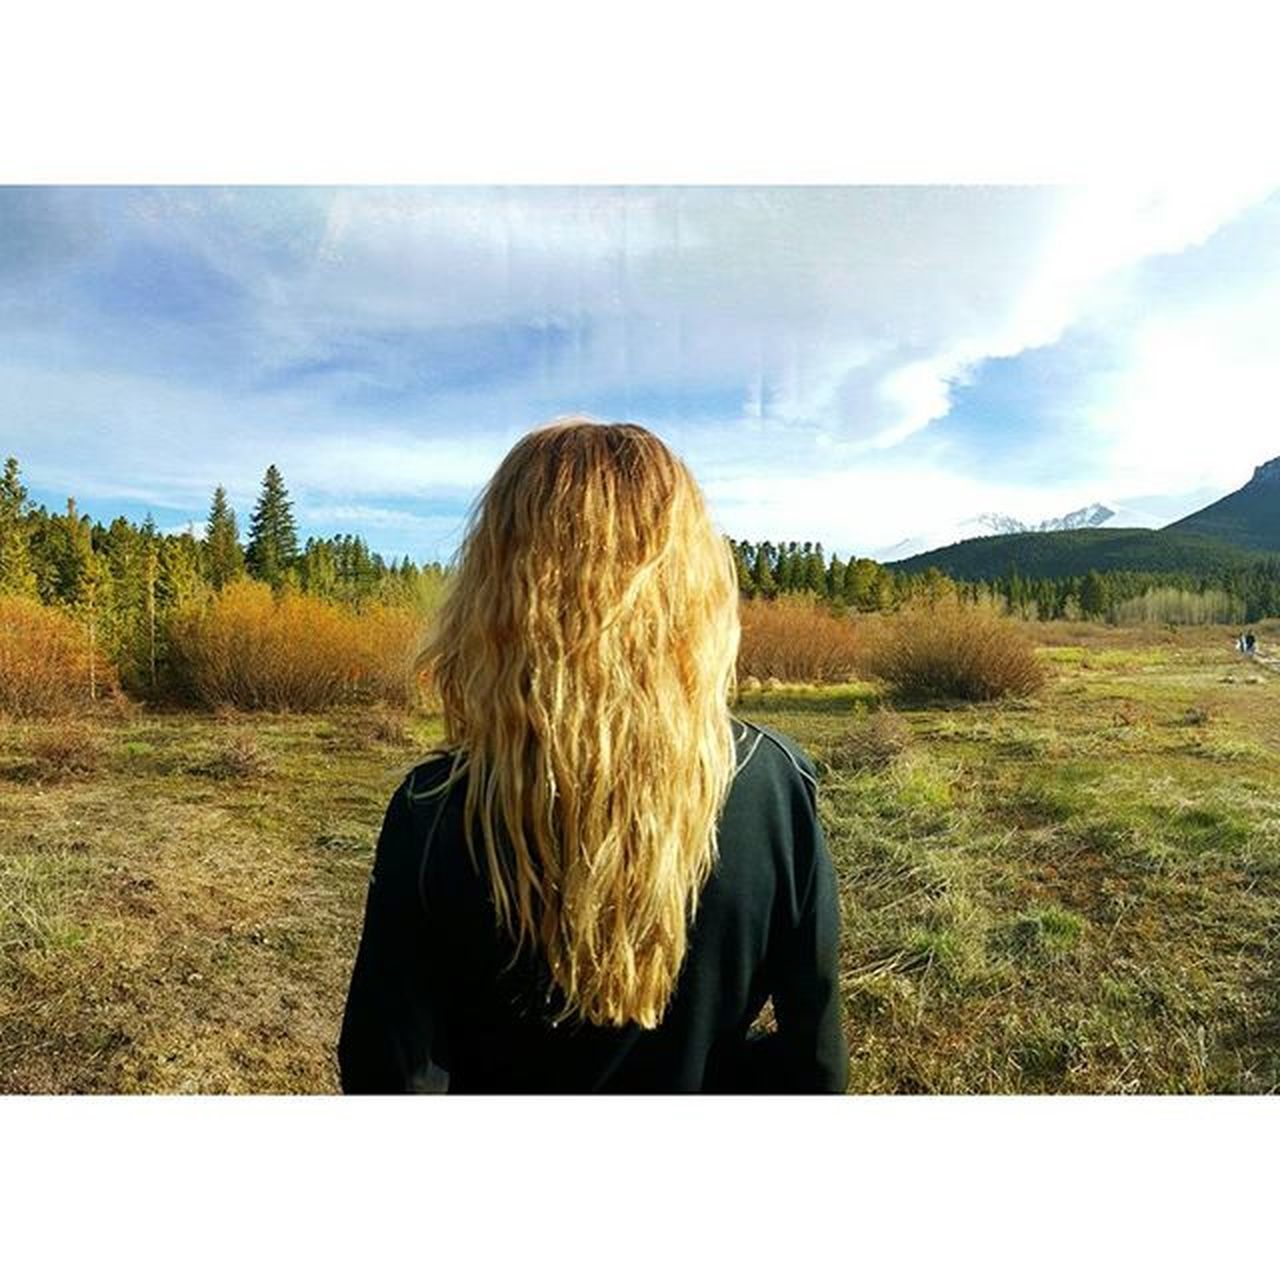 real people, one person, sky, blond hair, rear view, landscape, field, nature, leisure activity, women, cloud - sky, day, scenics, lifestyles, tranquil scene, outdoors, young women, tranquility, young adult, beauty in nature, tree, adult, people